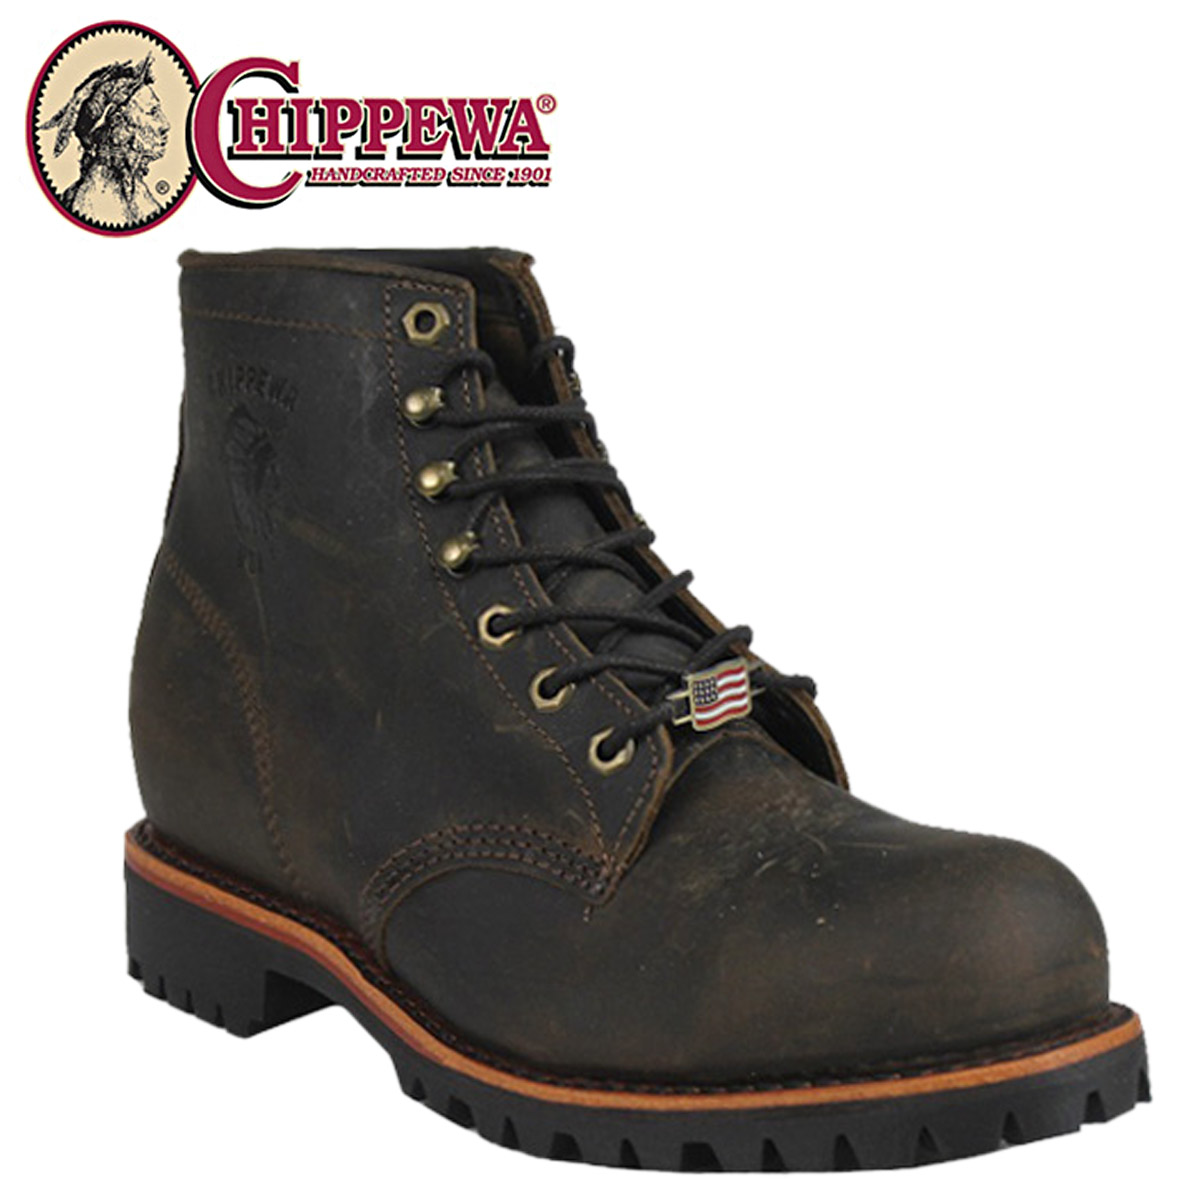 SneaK Online Shop | Rakuten Global Market: 20081 Chippewa CHIPPEWA ...